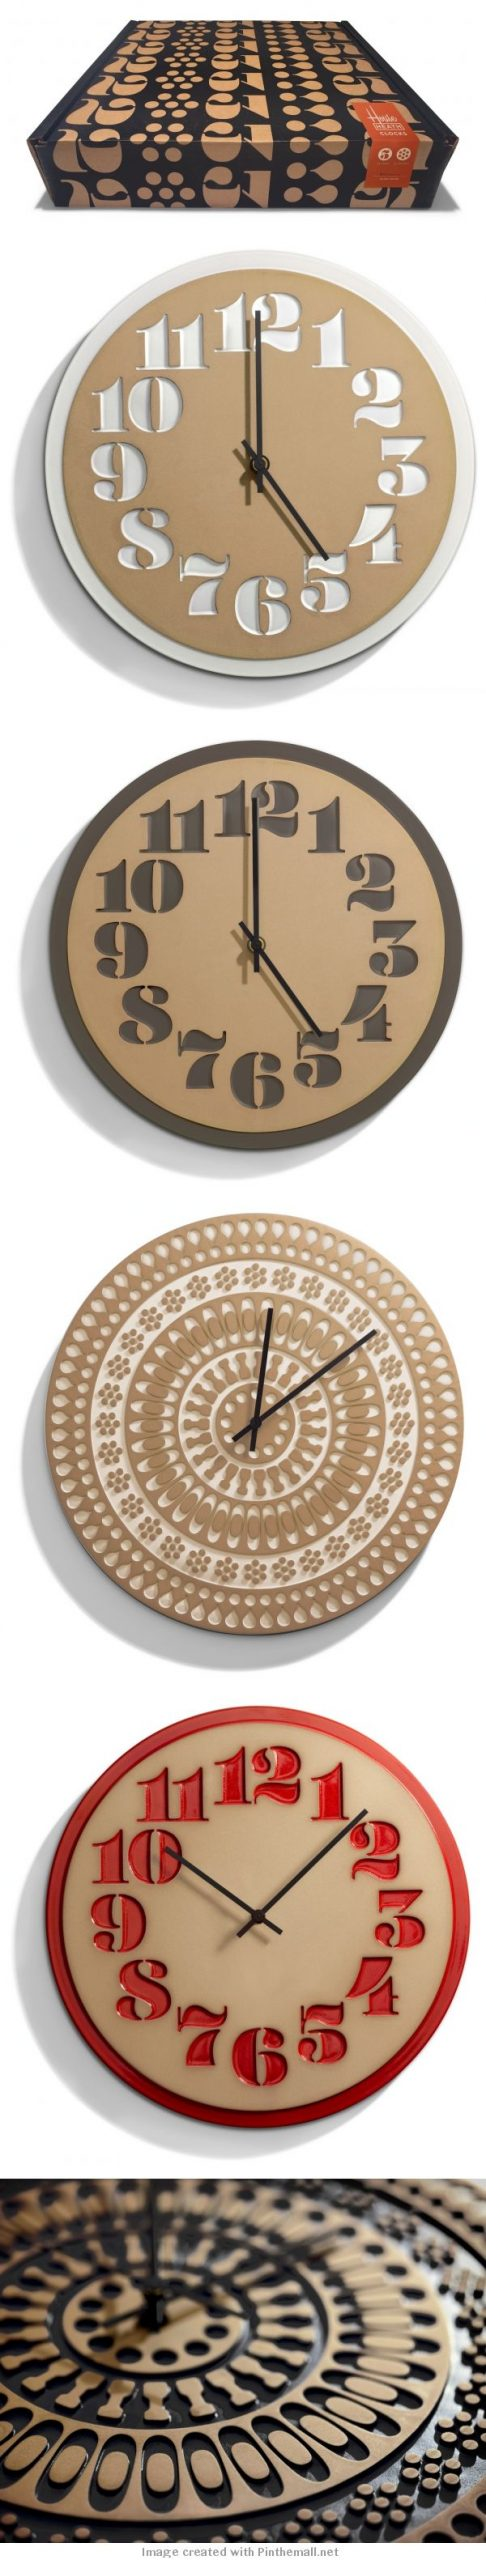 House Industries & Heath Ceramics Clocks